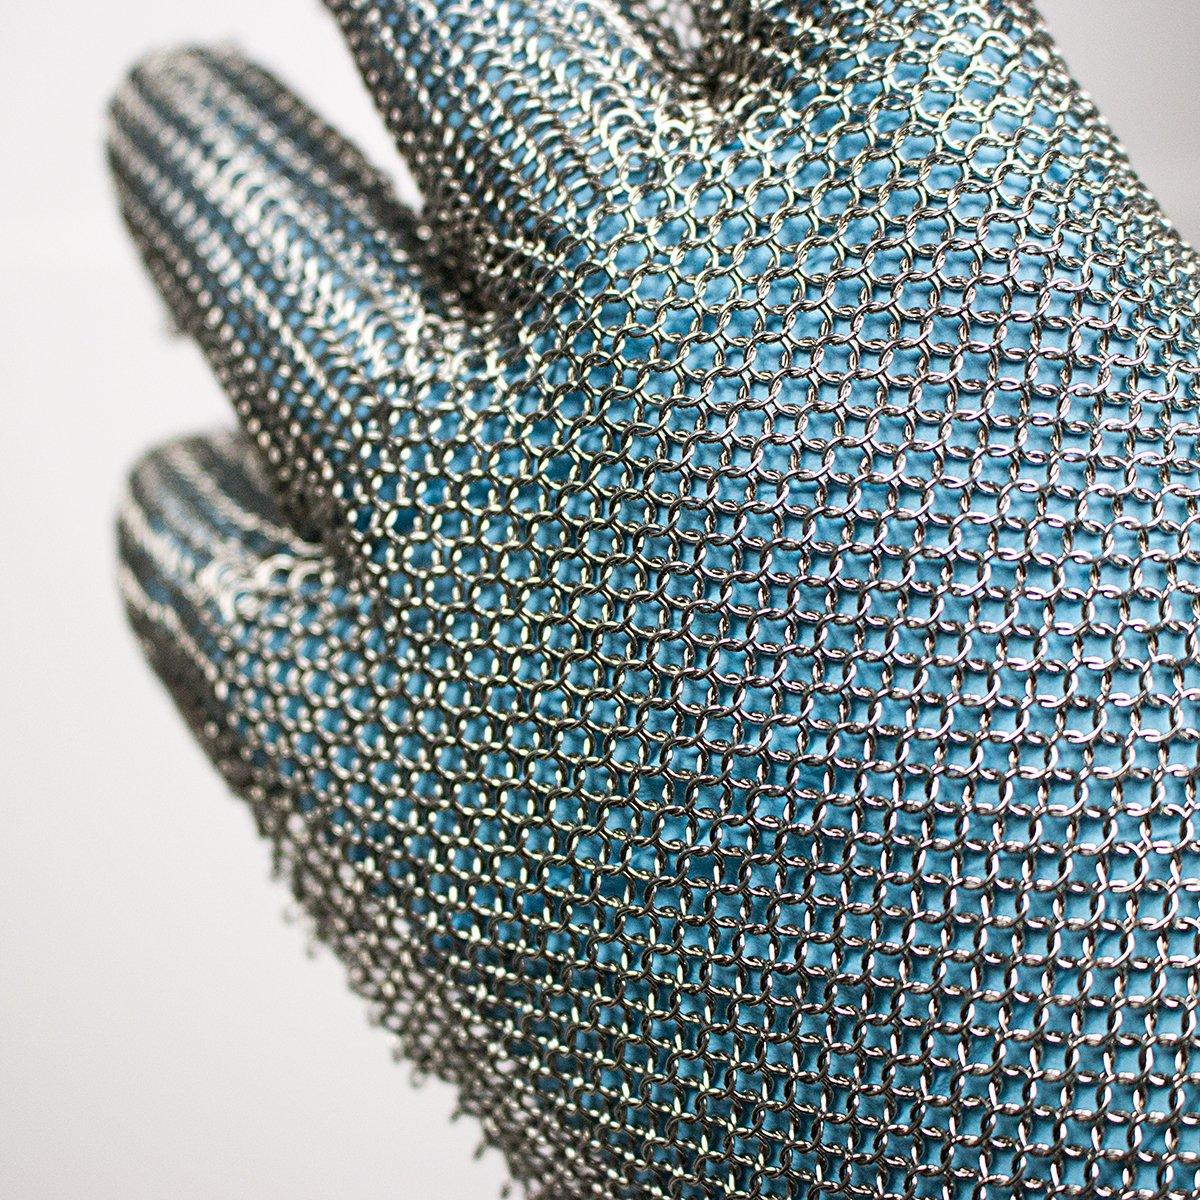 UltraSource Cut Resistant Stainless Steel Mesh Glove, Extended Cuff with Silicone Straps, Size Small (One Glove) by UltraSource (Image #3)